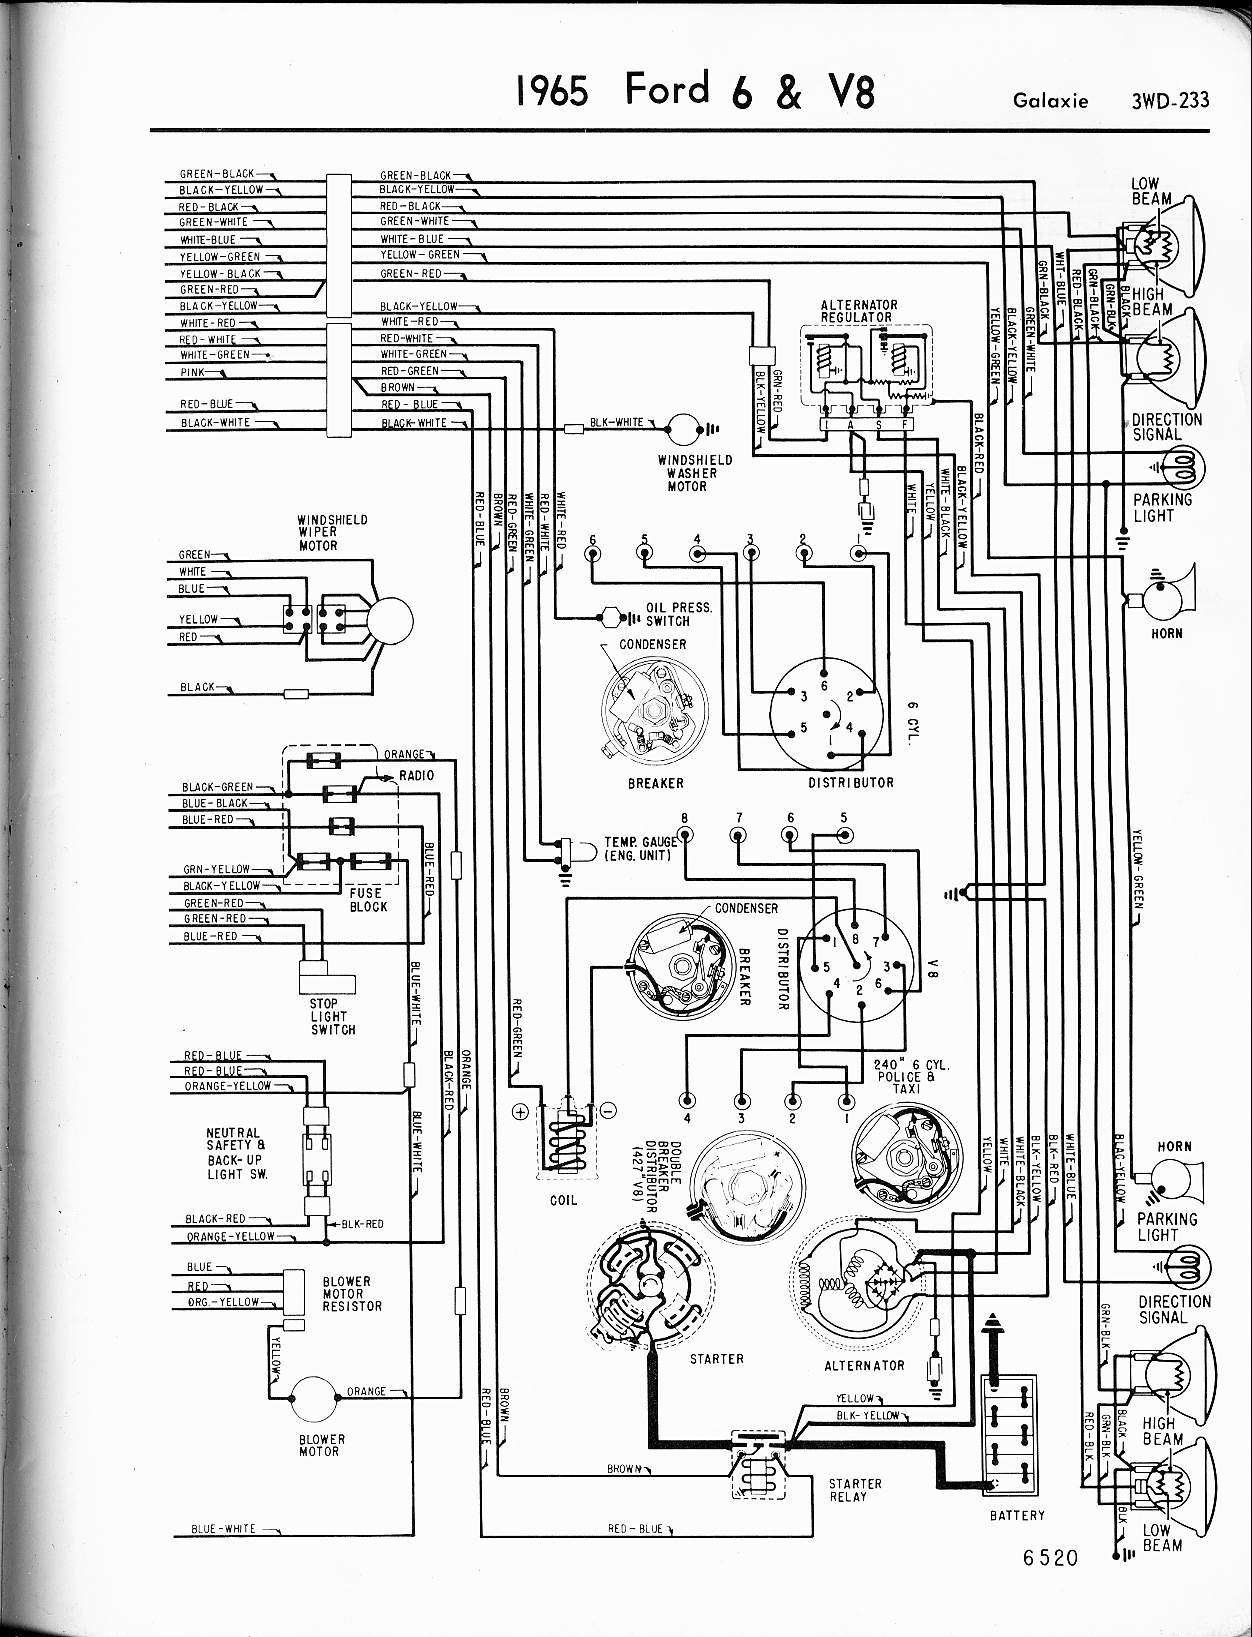 Falcon Ignition Wiring Diagram - DIY Enthusiasts Wiring Diagrams •